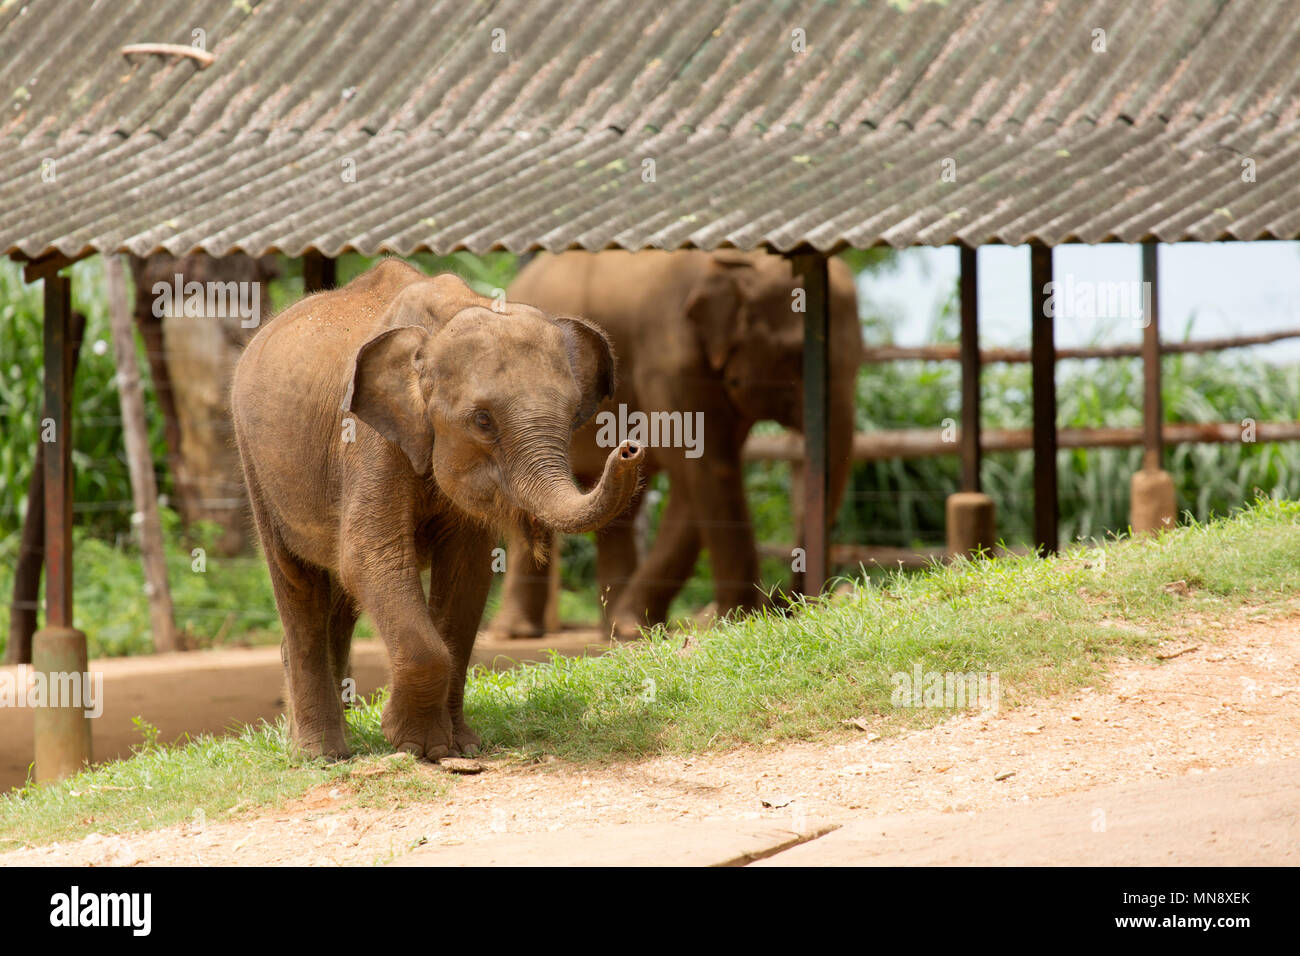 Elephants at the Udwawalawe Elephant Transit Home at Uwawalawe National Park in Sri Lanka. - Stock Image